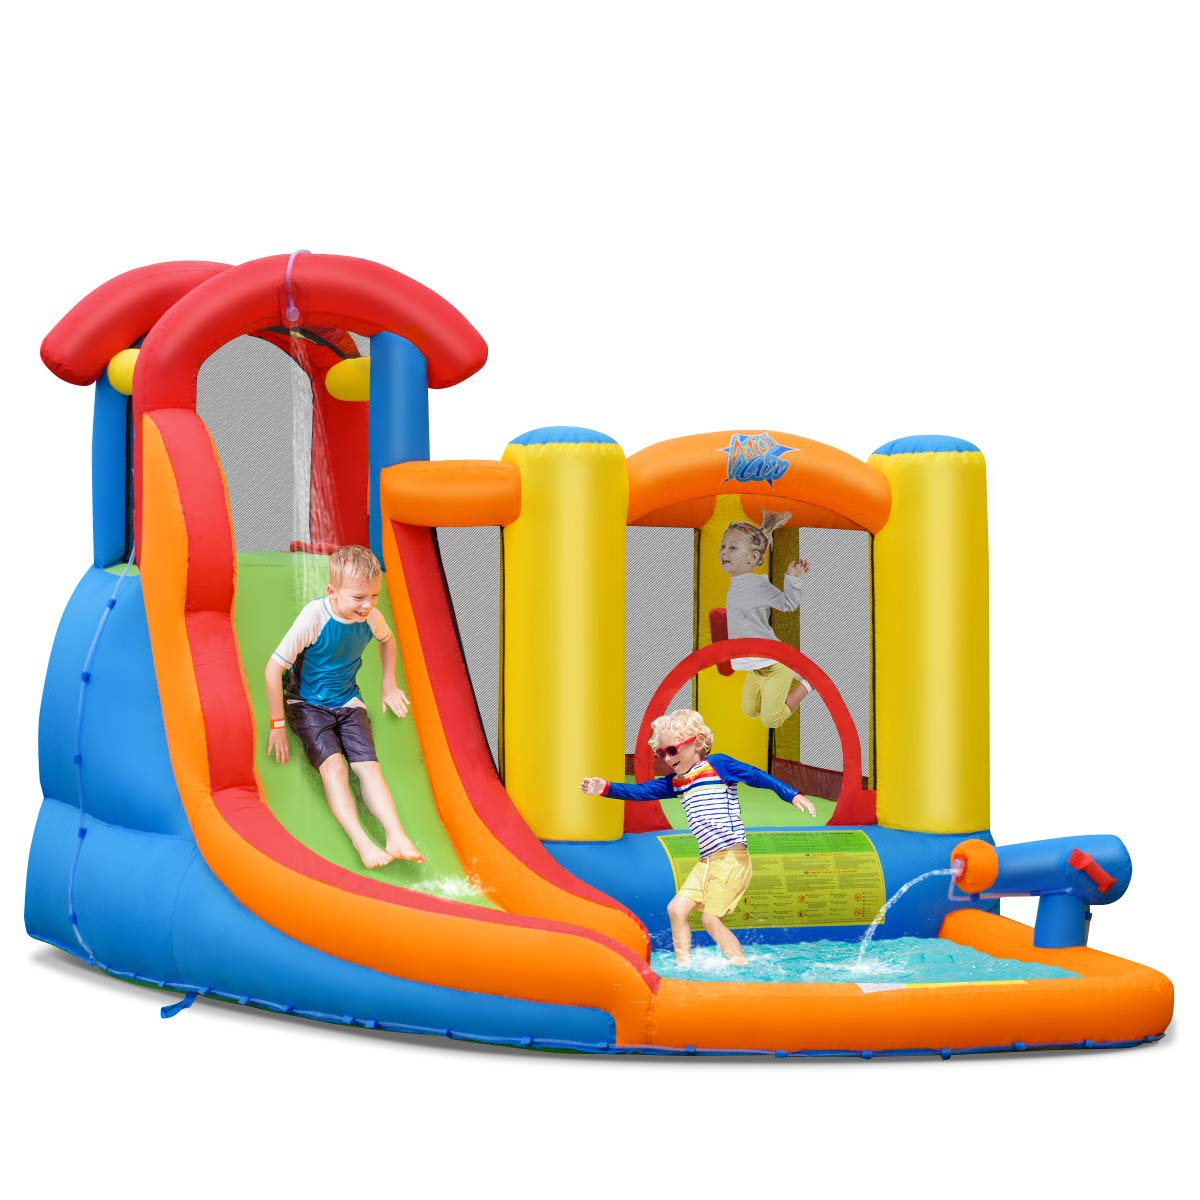 BOUNTECH Inflatable Bounce House, 6 in 1 Water Slide Jumping Park w/Splashing Pool, Climbing Wall, Water Cannon, Basketball Scoop, Including Carry Bag, Stakes, Repair Kit, Hose (Without Blower)